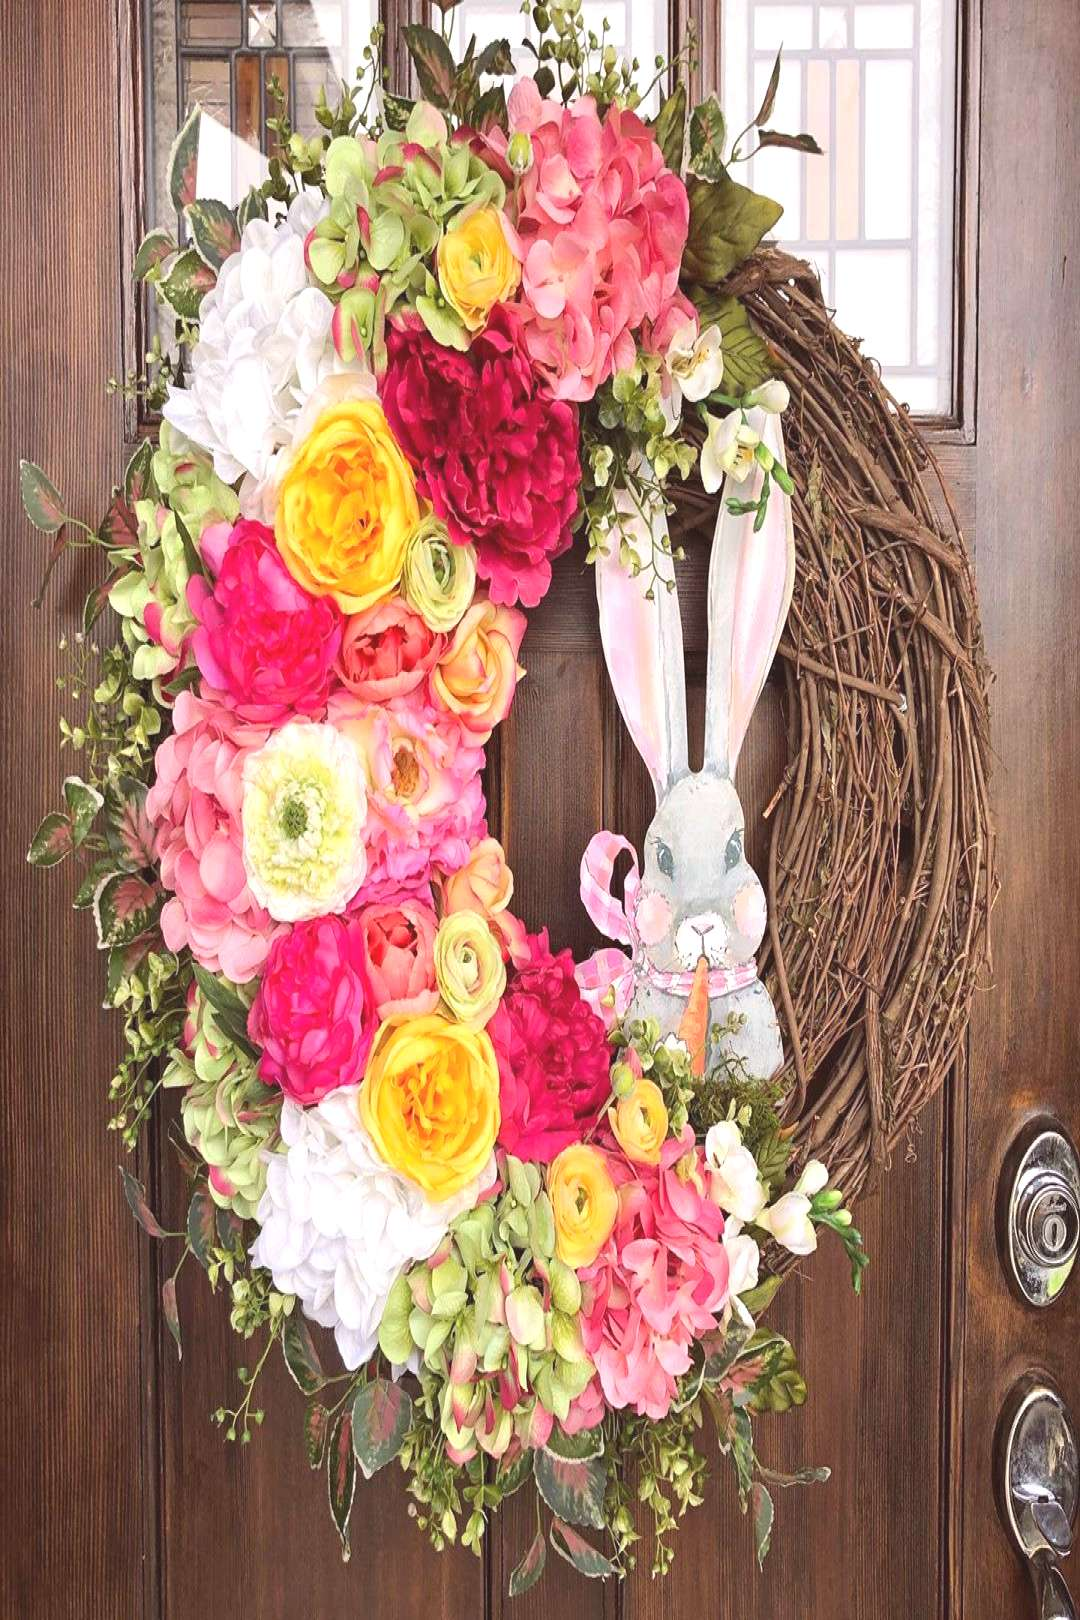 New!! Large Easter bunny wreath!! Message me #Easter #easterwreat